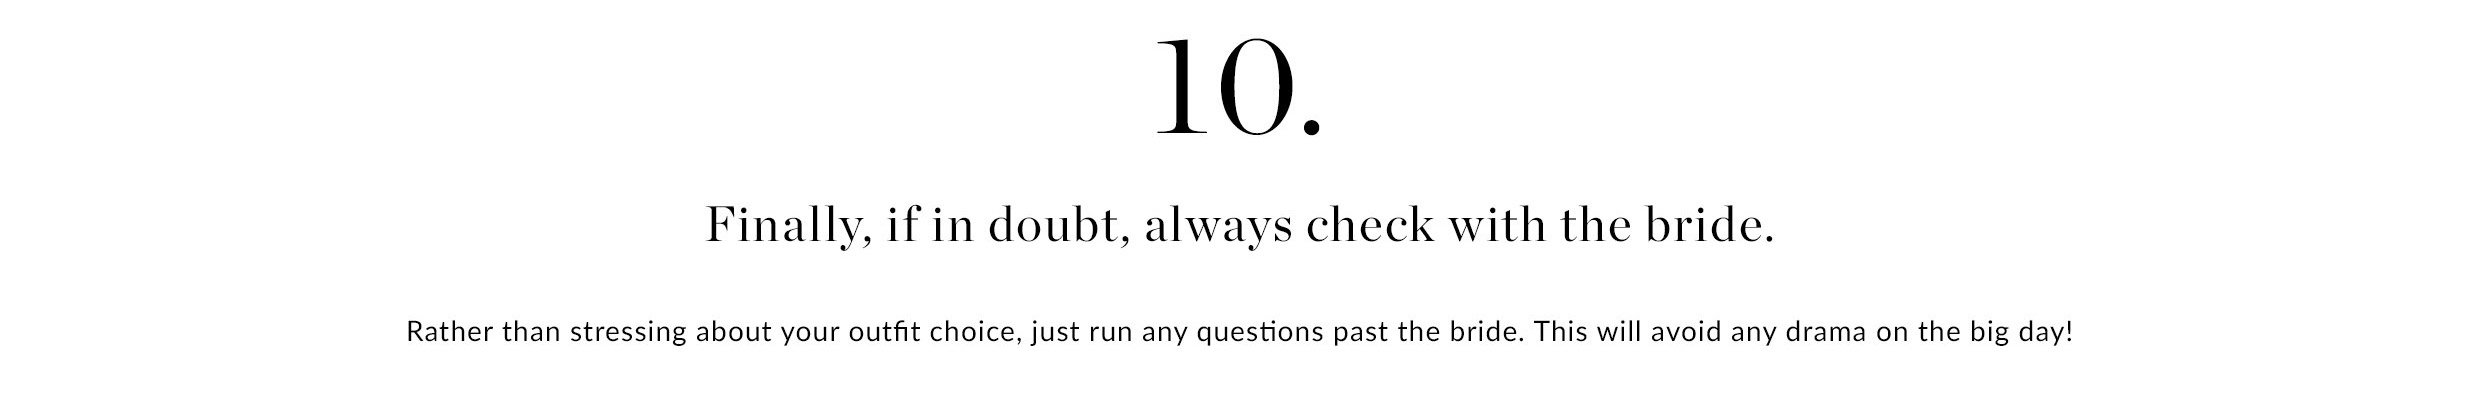 10. Finaly, if in doubt, always check with the bride | Rather than stressing about your outfit choice, just run any questions past the bride. This will avoid any drama on the big day!